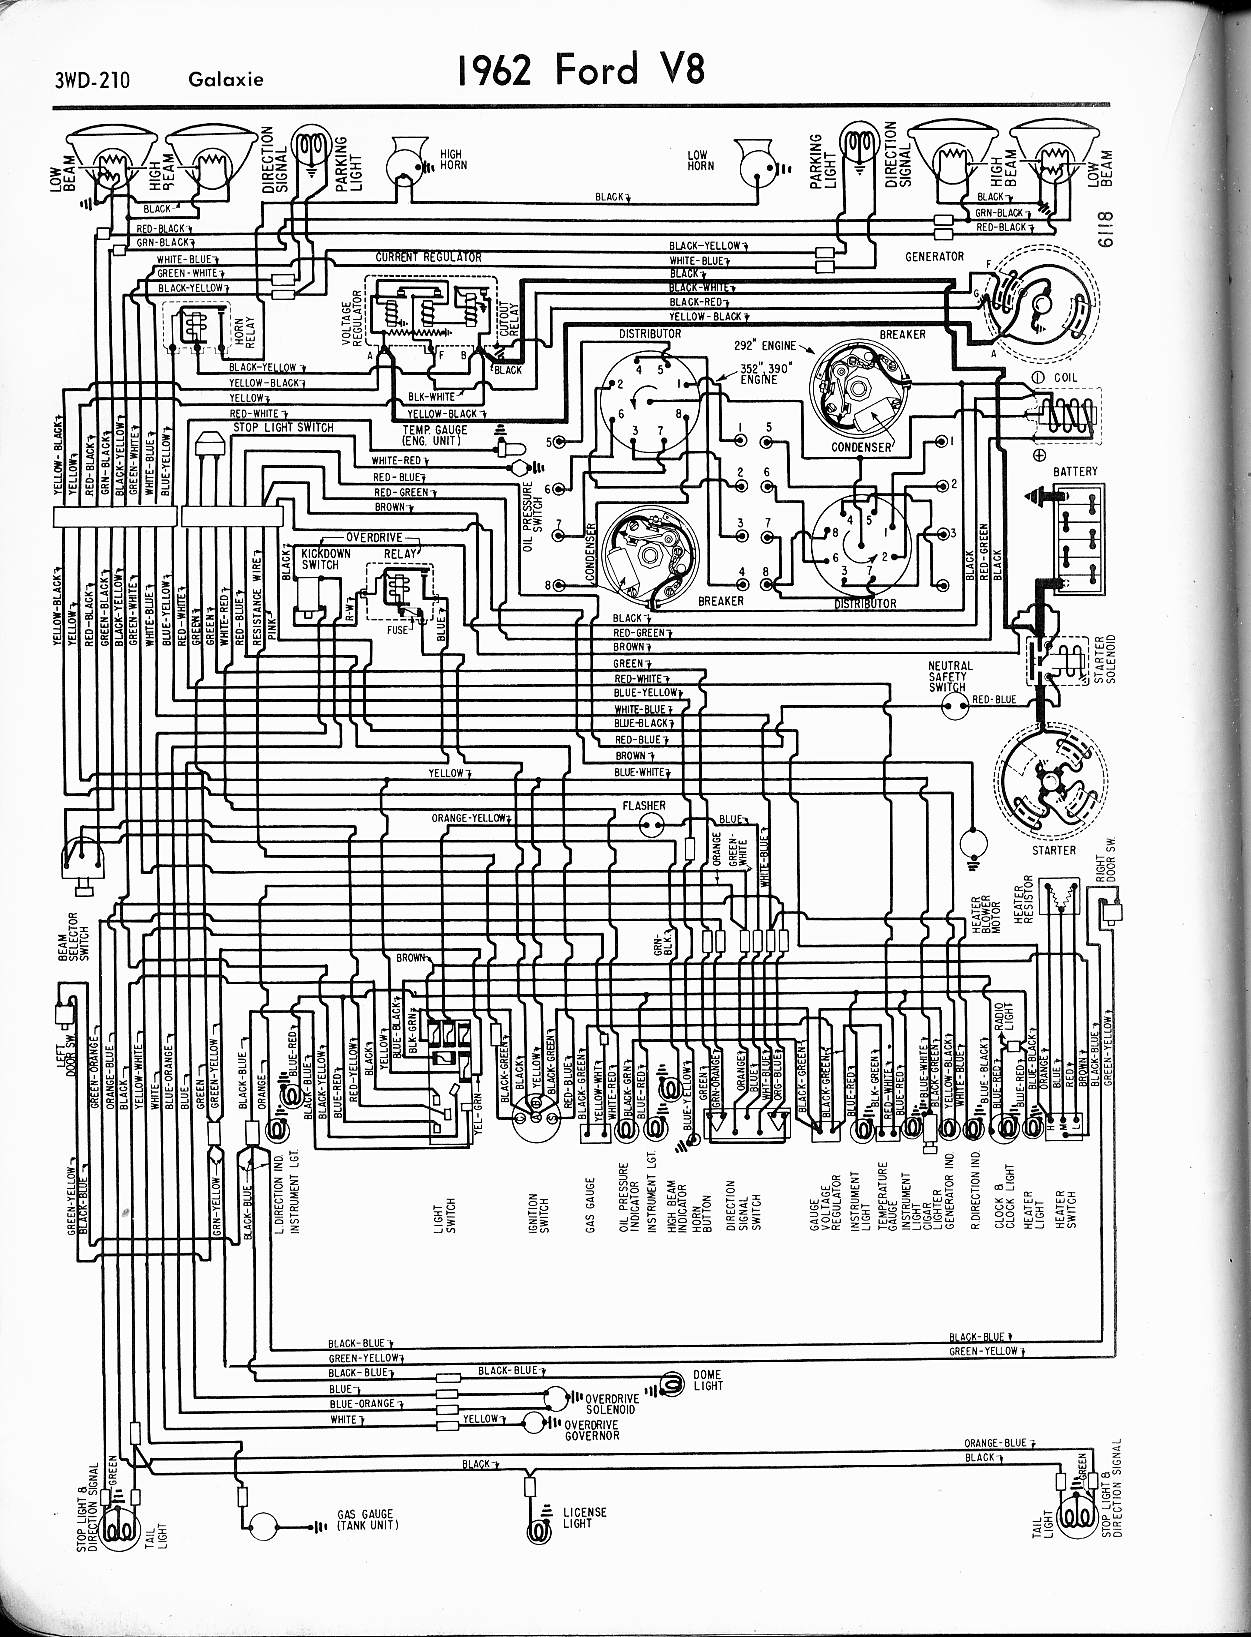 1965 mustang ignition switch wiring diagram Collection-1962 Thunderbird 2-h